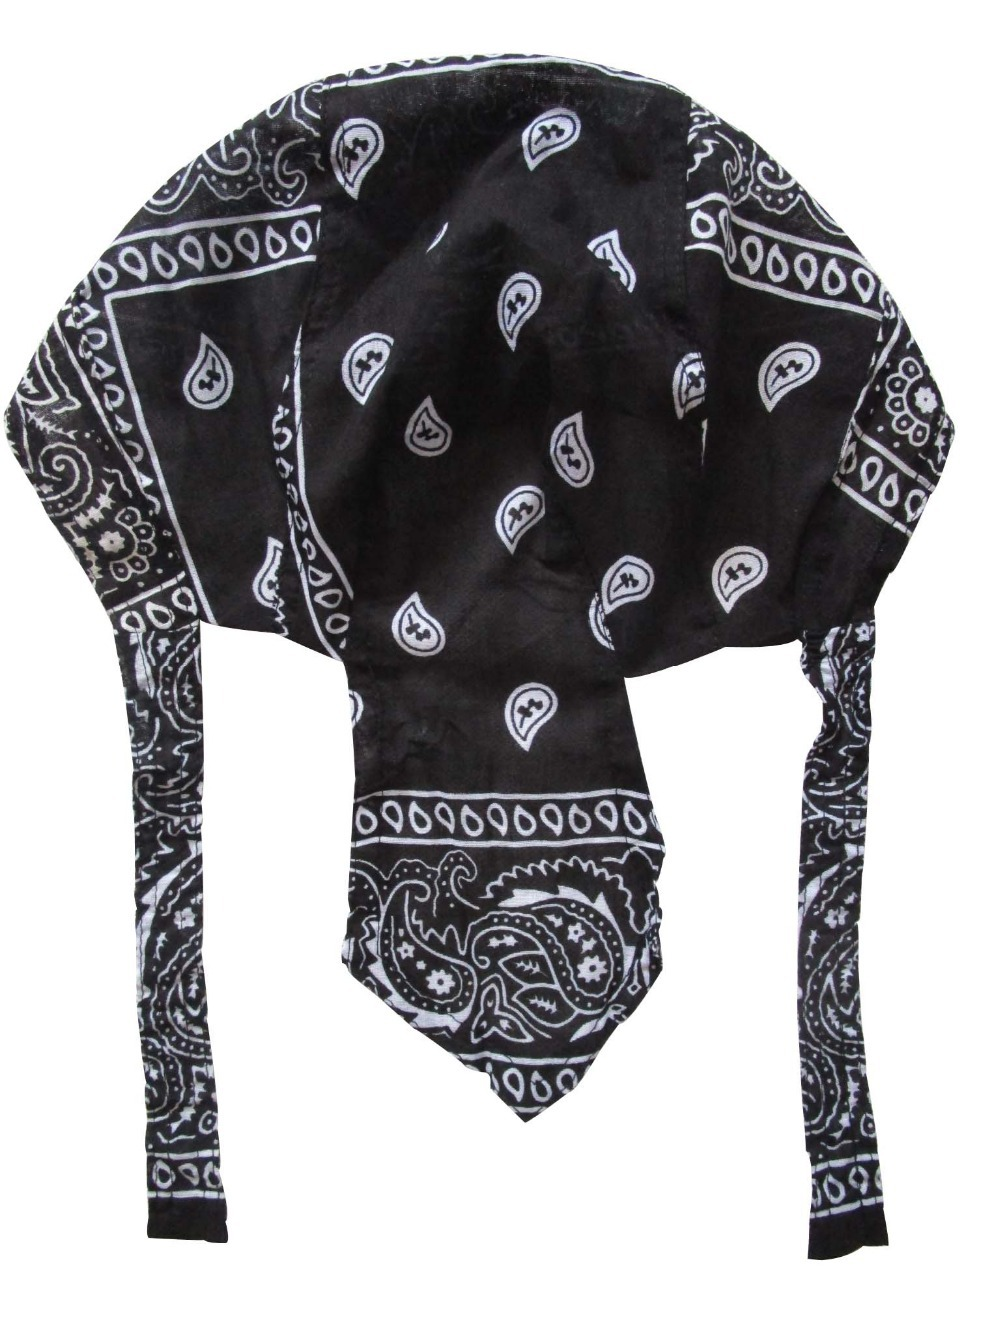 US Army Strong Do Rag Doo Rag Skull Cap Head Wrap Black